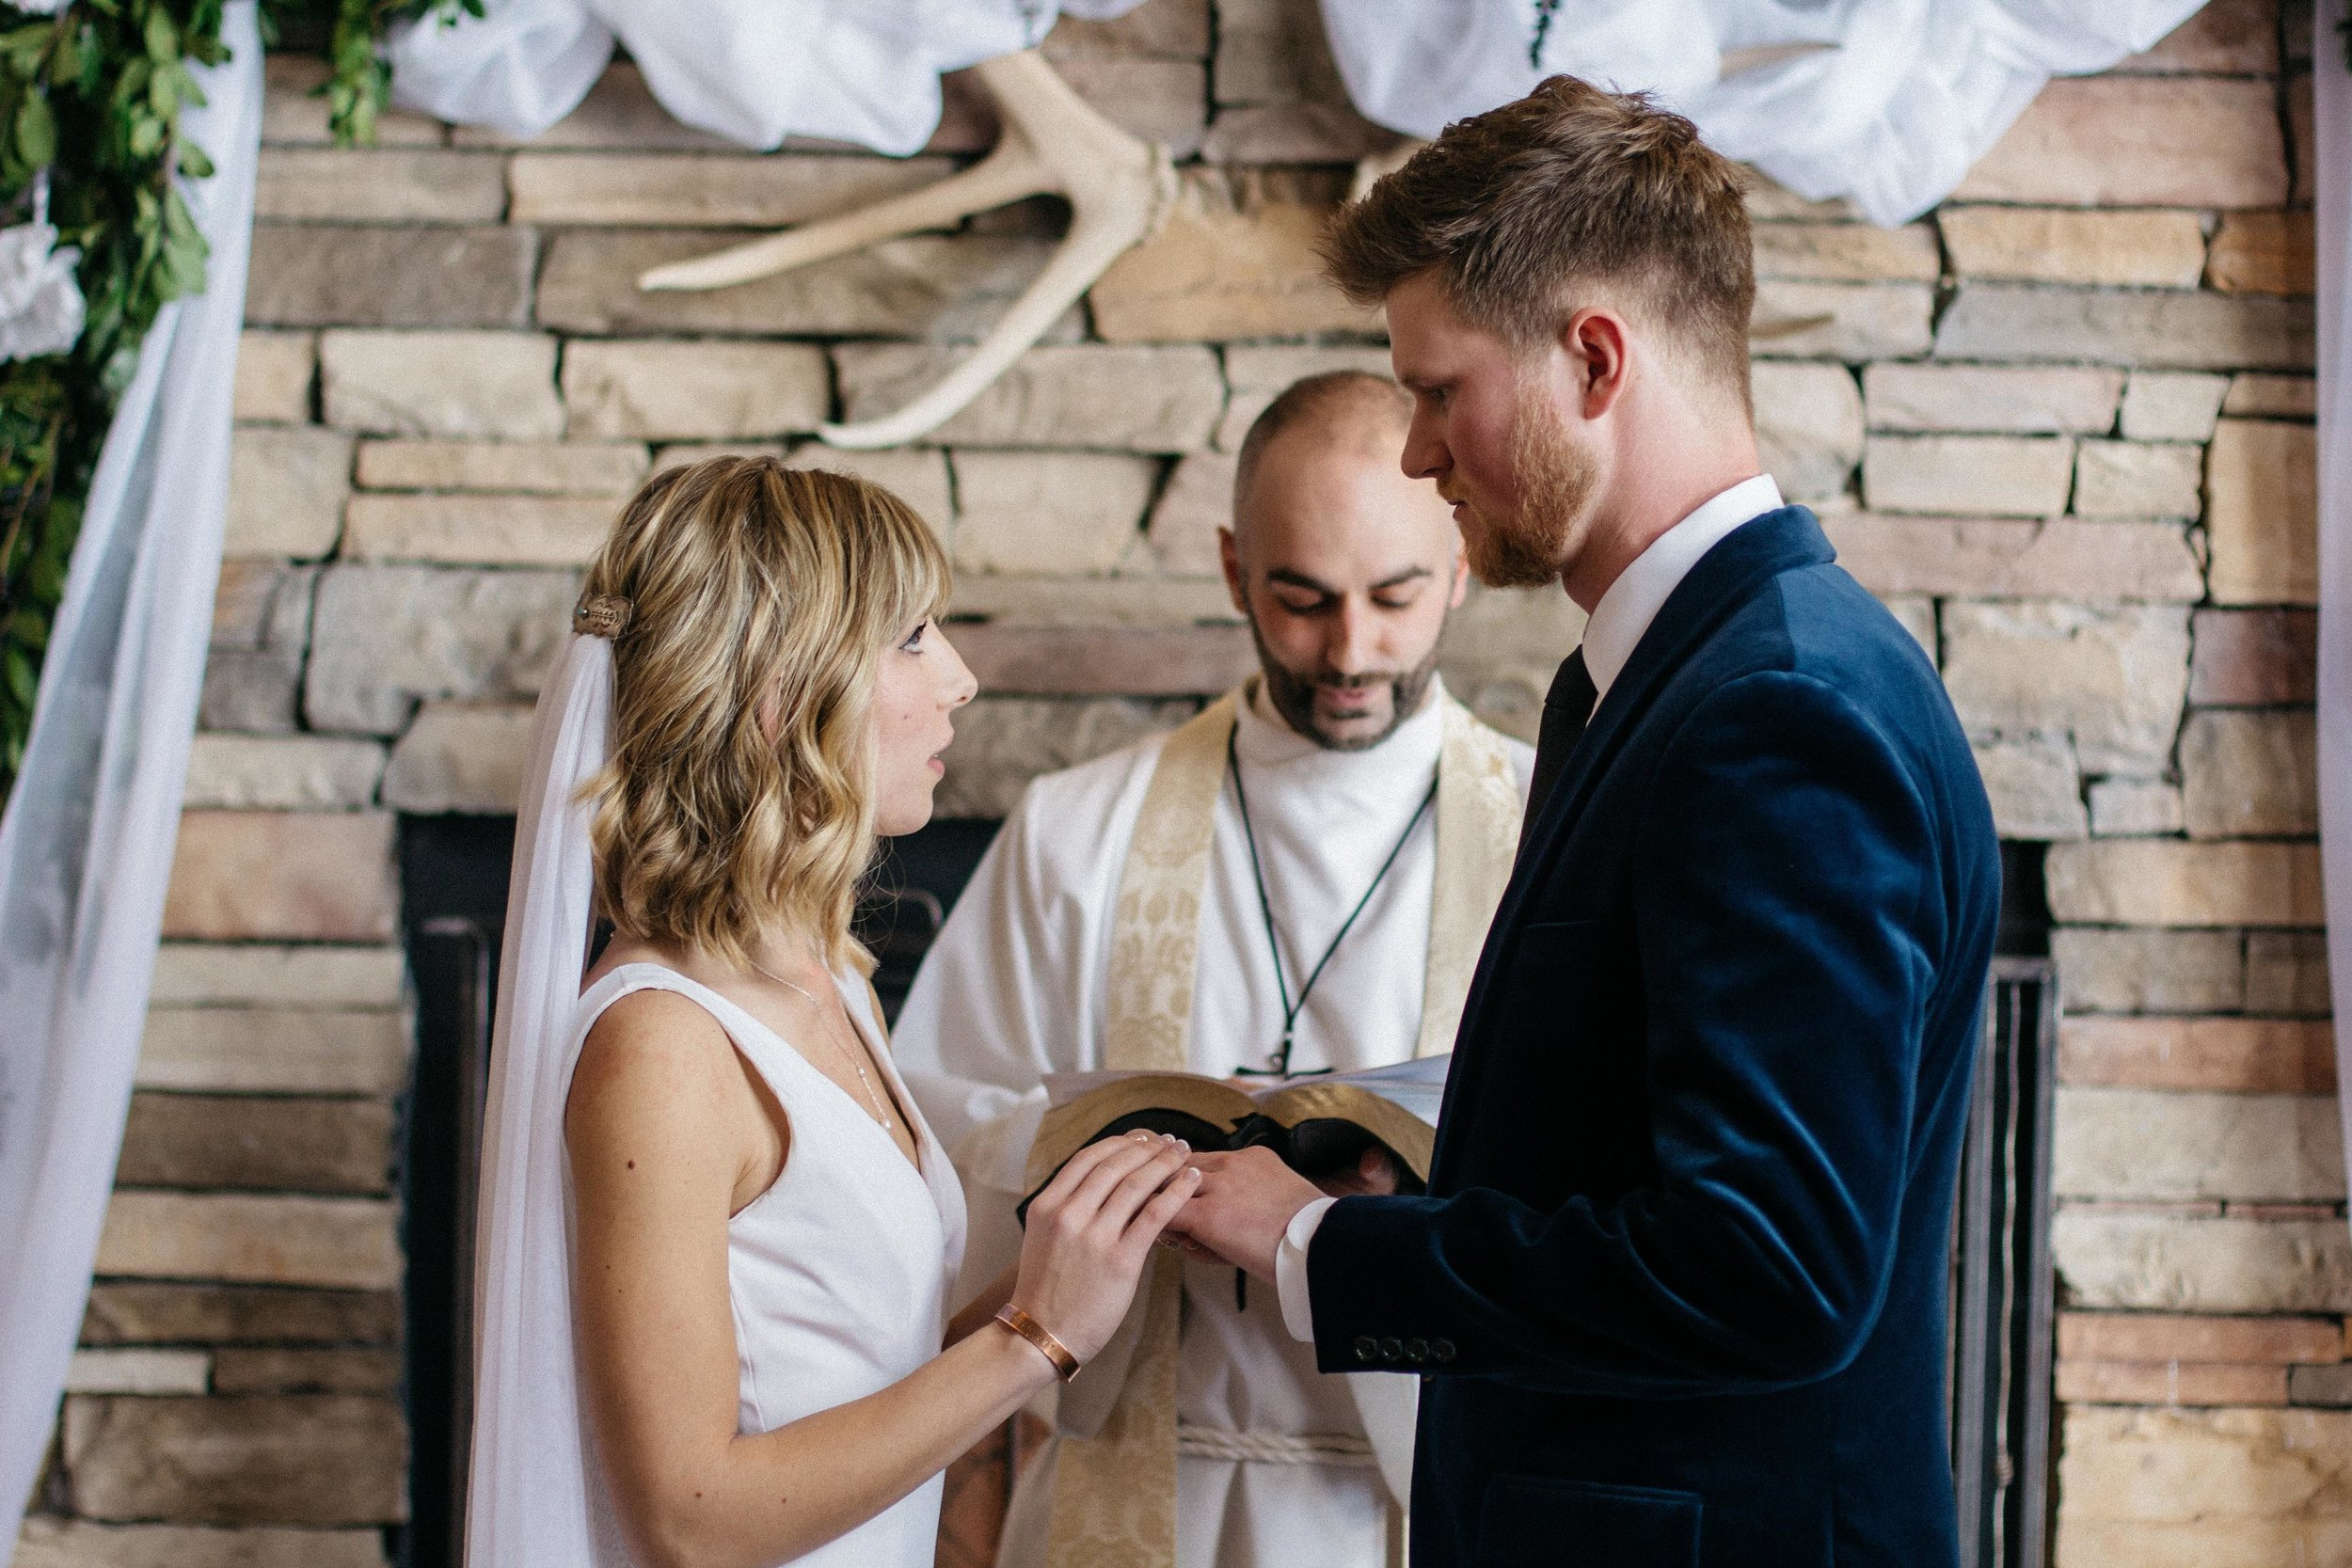 Saying our vows were some of the longest, most intense seconds of my life. We chose to rely on the liturgy rather than write our own vows, and in the moment I was so glad--I didn't know how couples could manage to say, let alone write, their vows without breaking down!